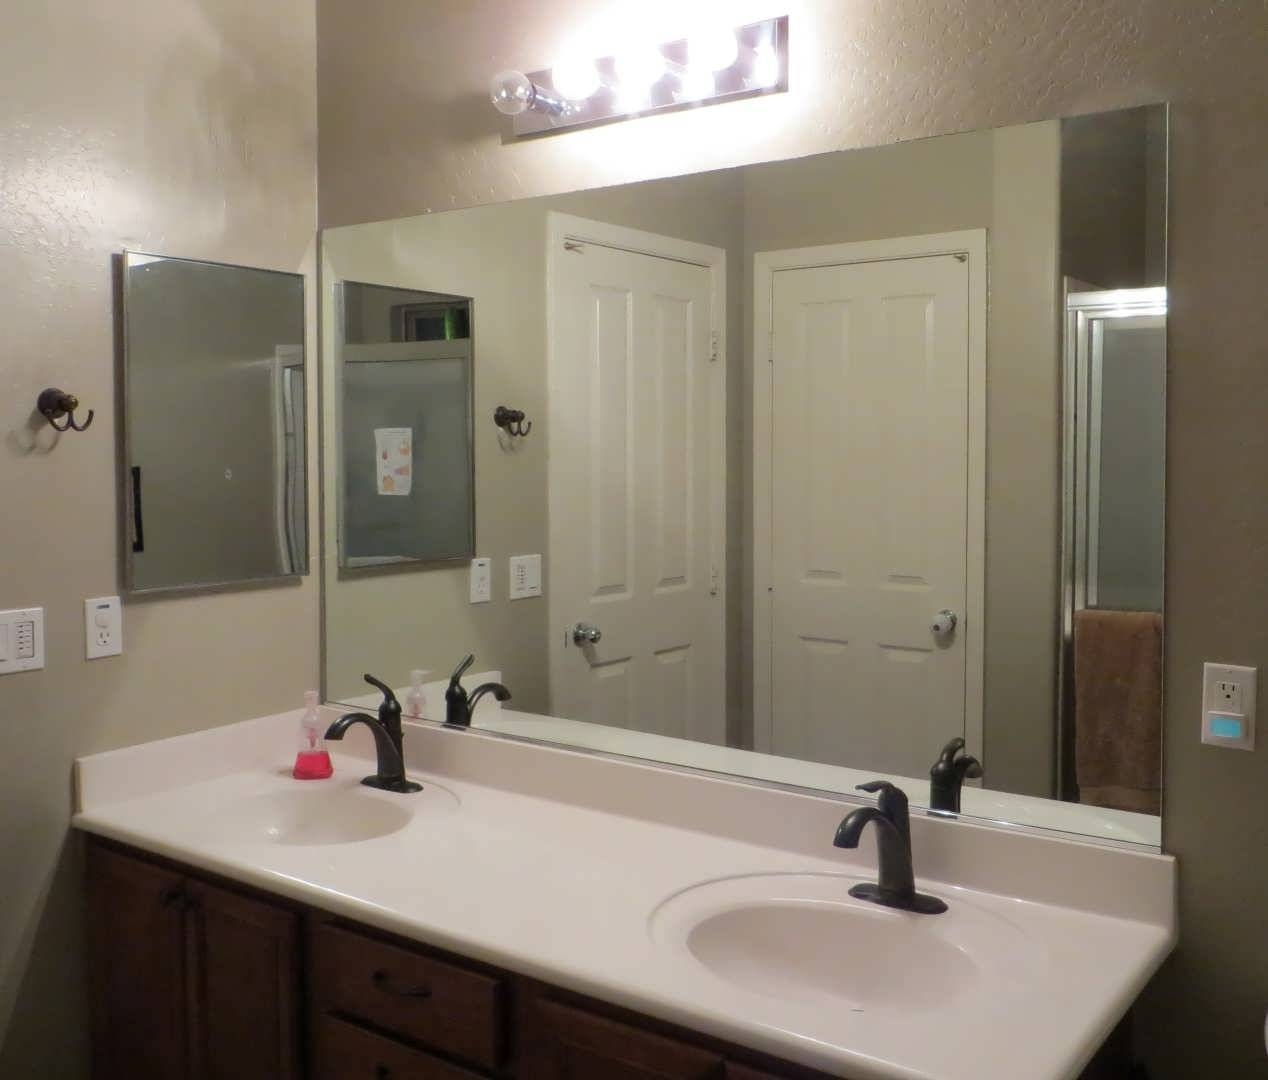 Bathroom : Wholesale Mirrors Mirrors In Bathrooms Made To Measure within Funky Mirrors for Bathrooms (Image 21 of 25)